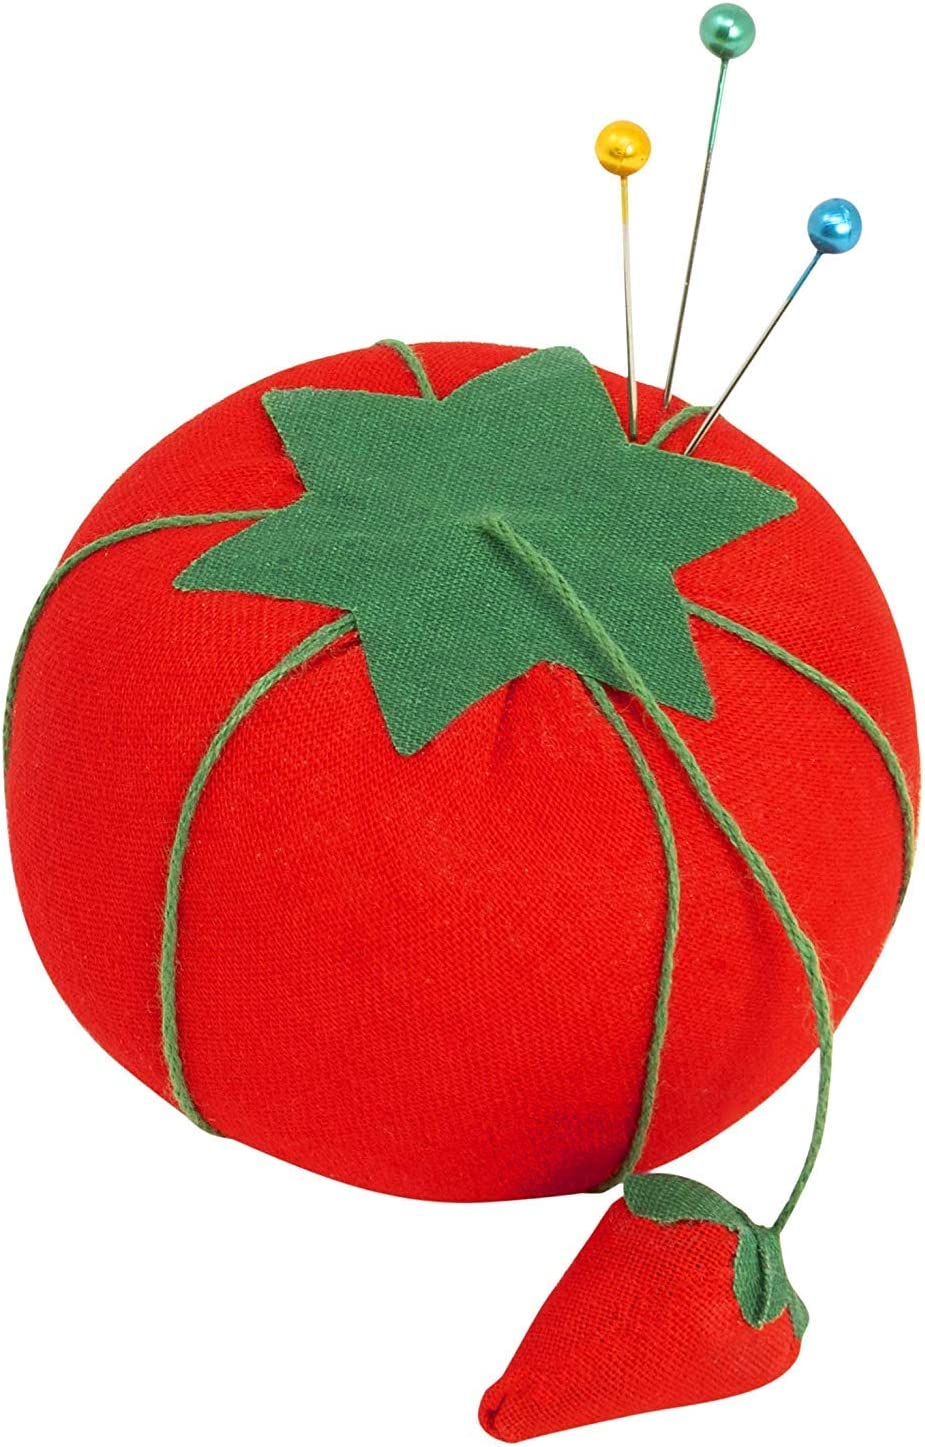 KORENJUL 1Pc Cute Tomato Shaped Needle Pin Cushion DIY Handcraft Tool for Cross Stitch Sewing Home Sewing Needle Pin Cushion Pillow Pincushion 7cm//2.76in